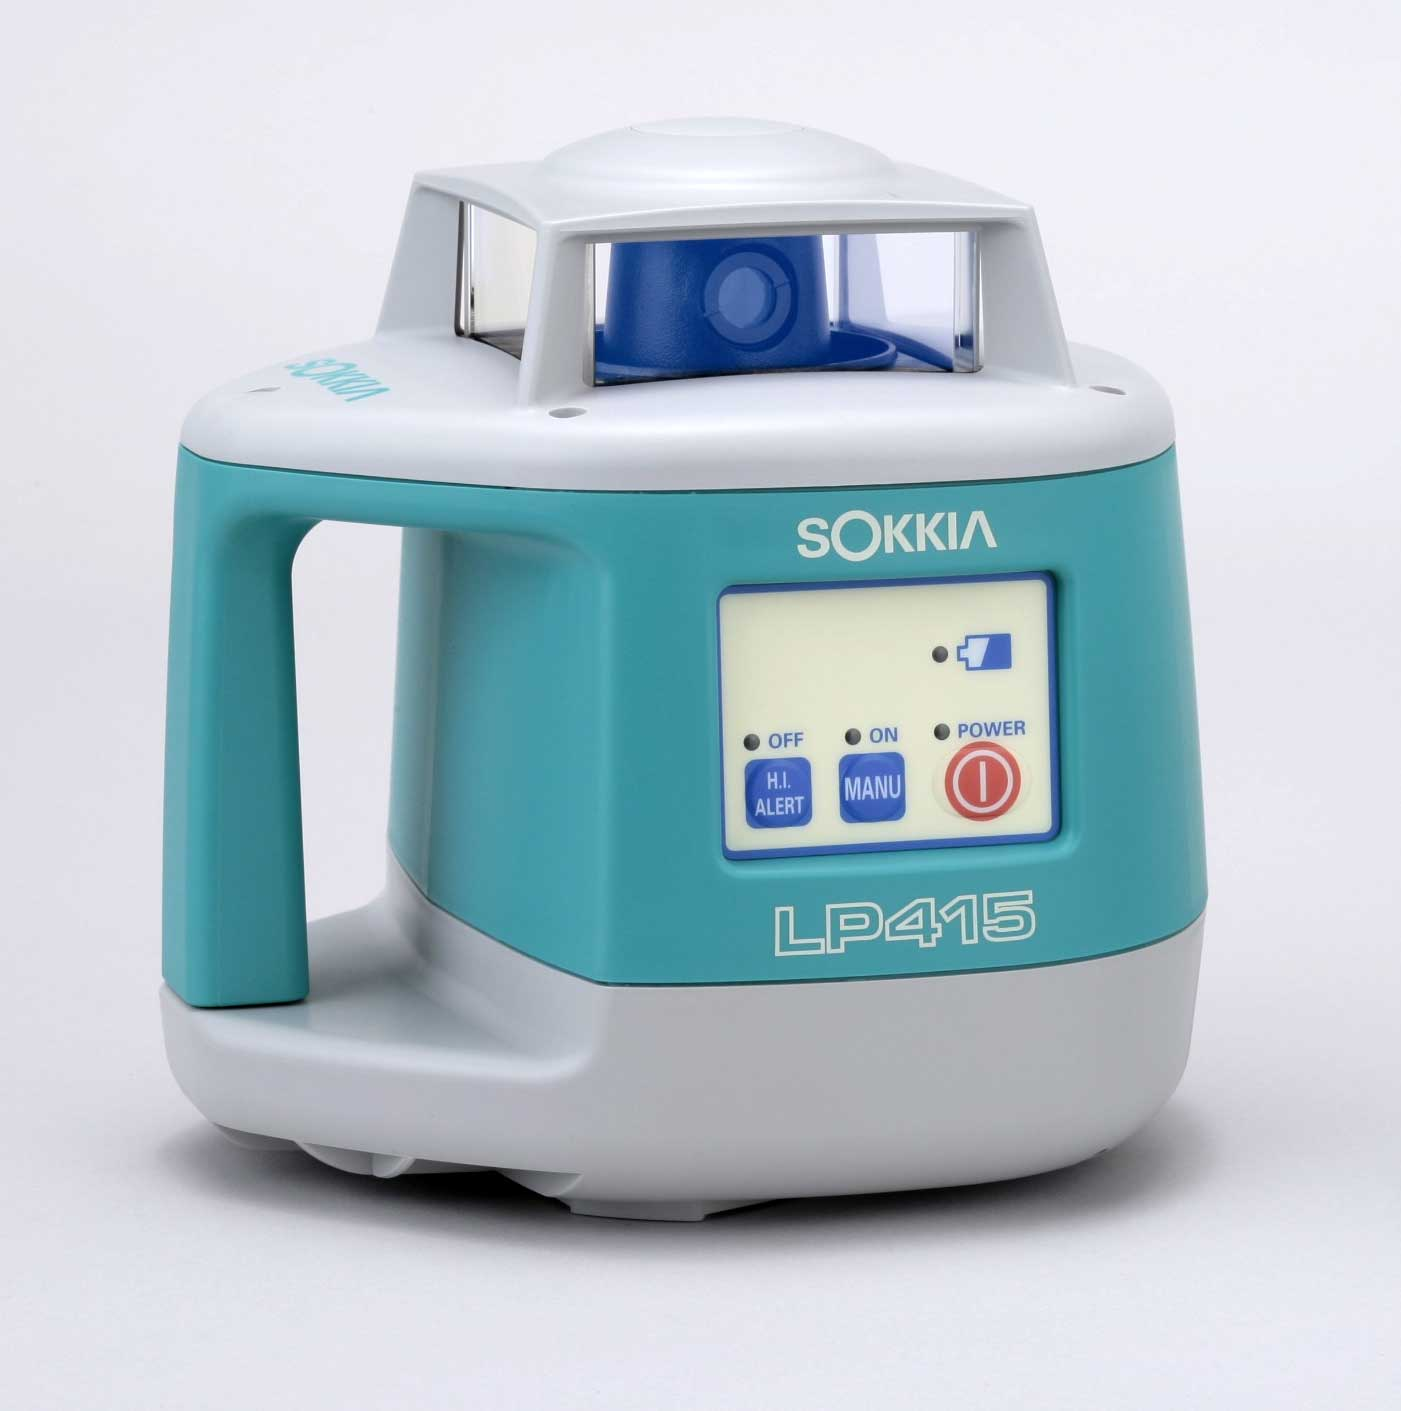 Sokkia Rotating Laser LP-415 India